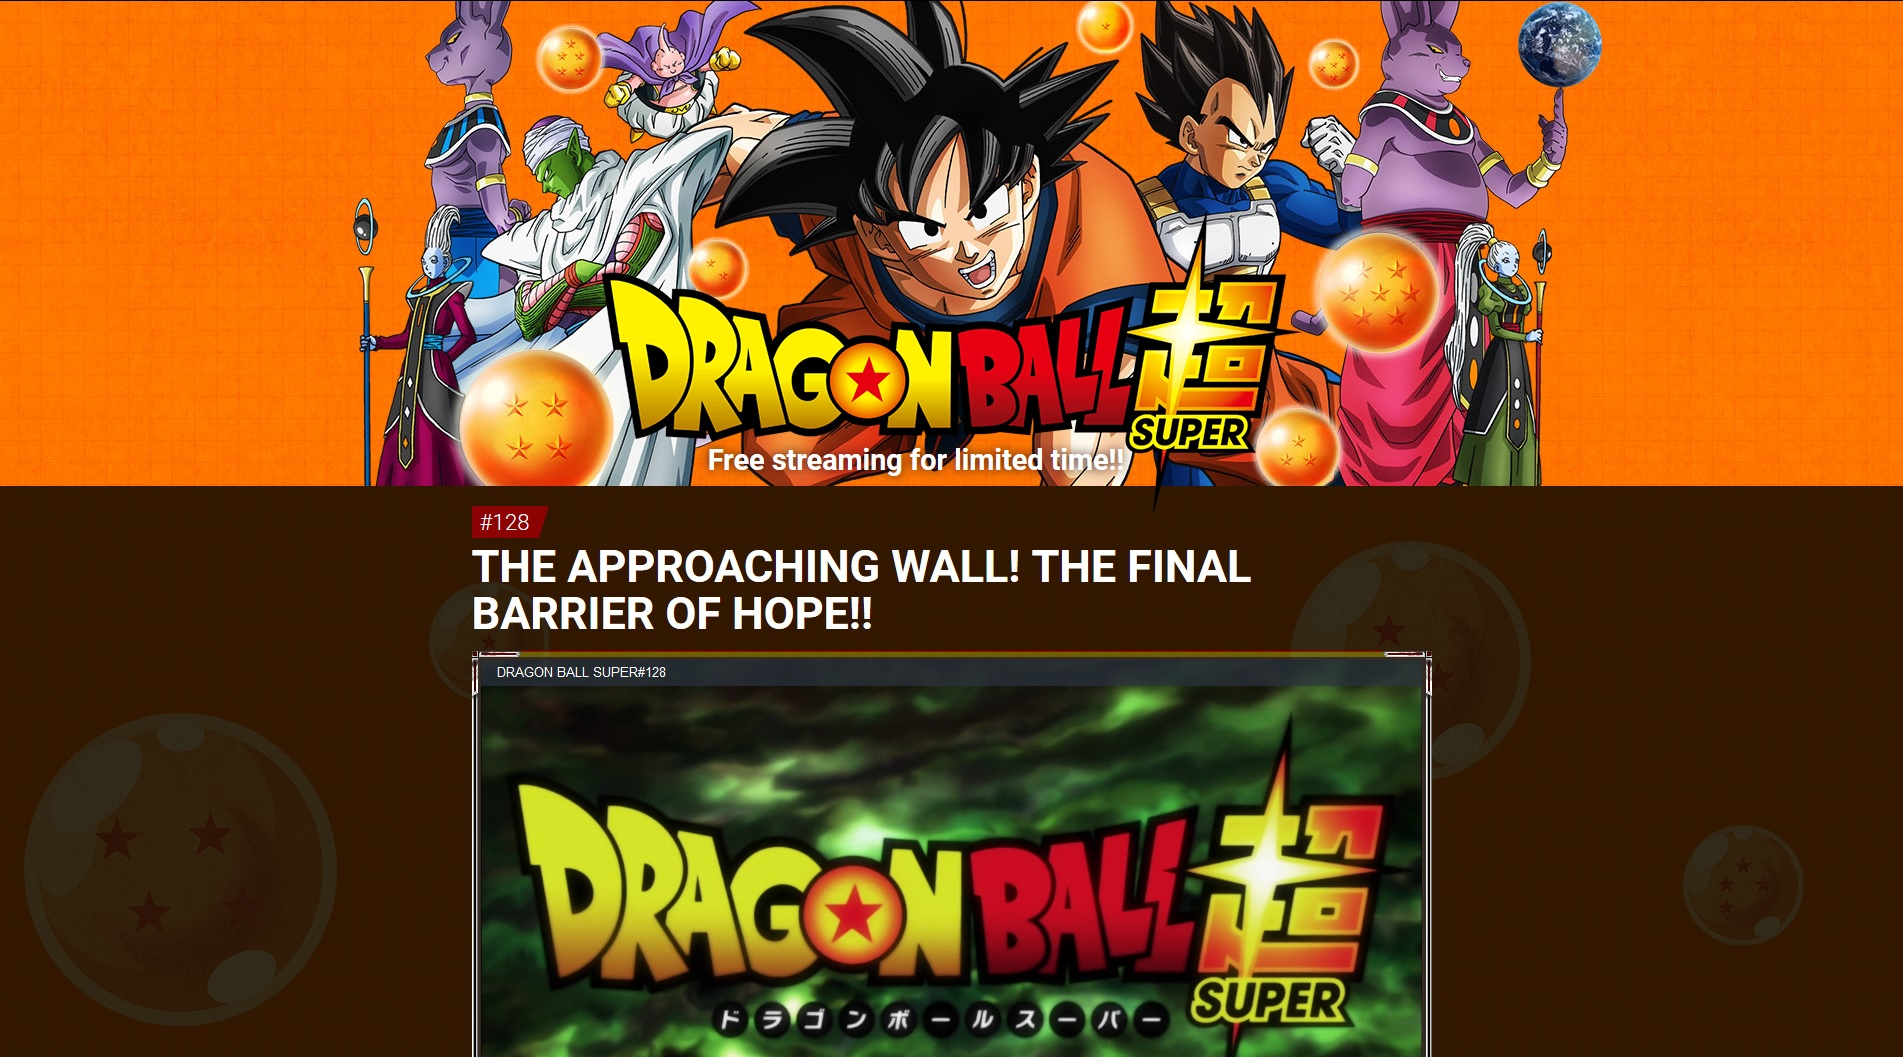 Dragon Ball Super streaming.jpg